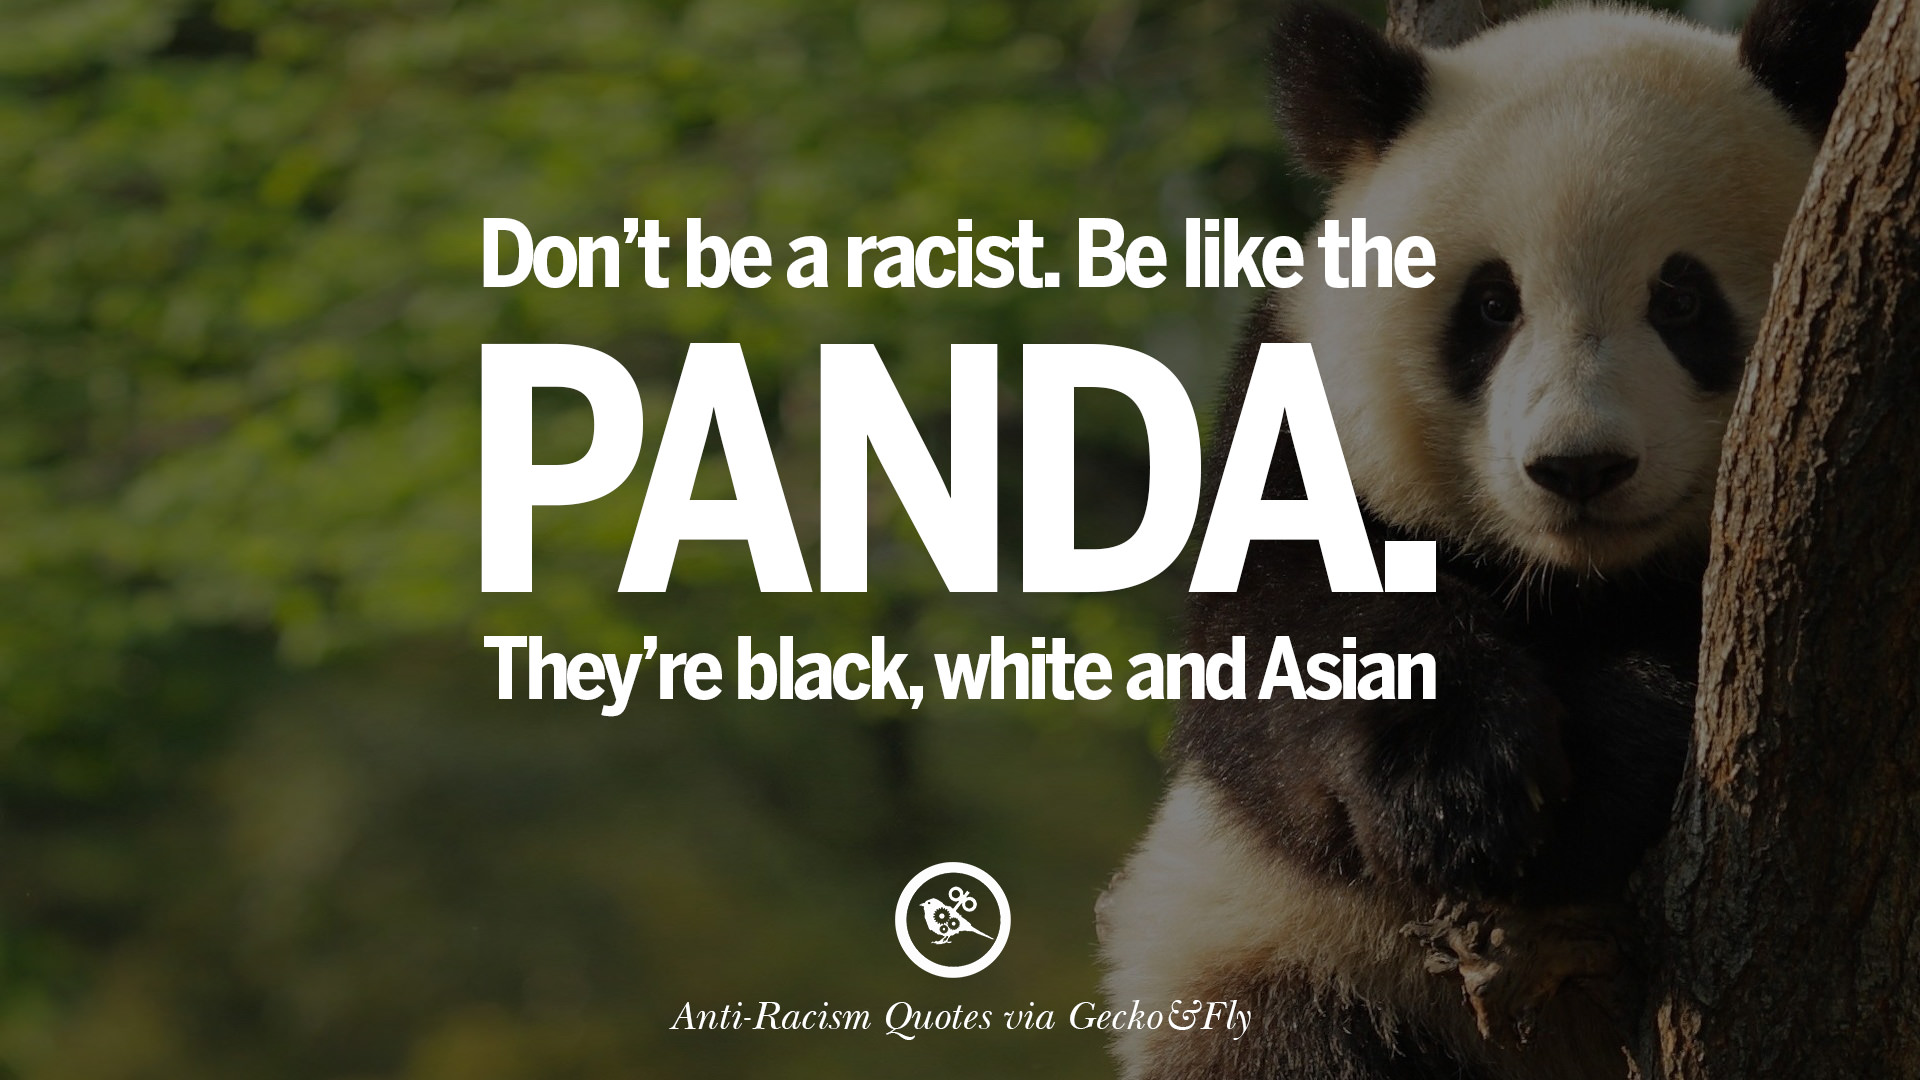 Panda Quotes 16 Quotes About Anti Racism And Against Racial Discrimination